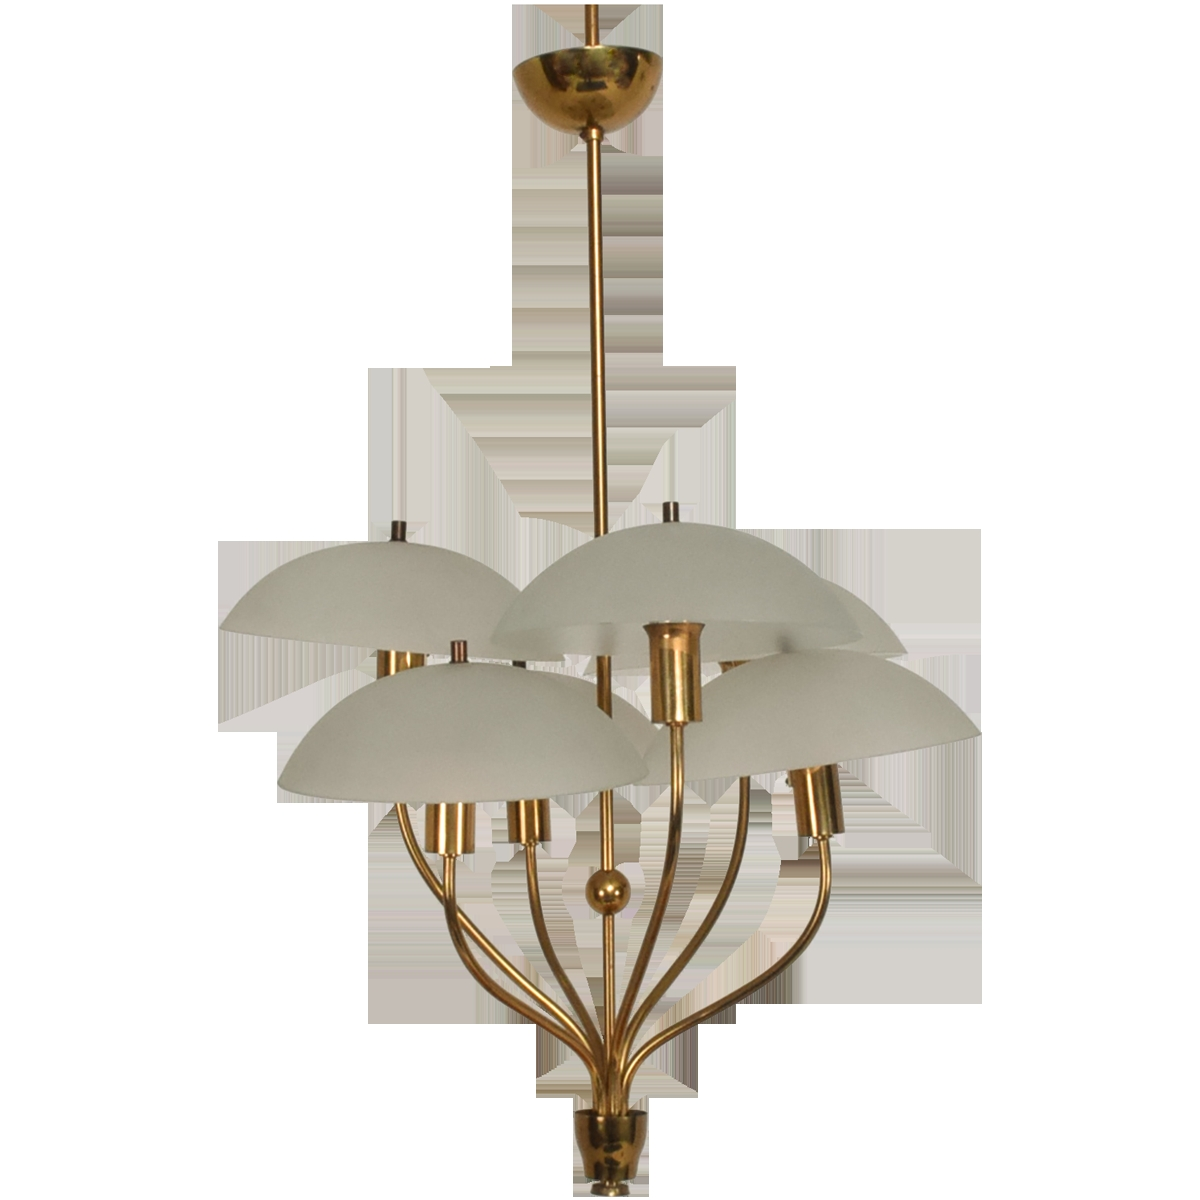 Viyet Designer Furniture Lighting Mid Century Modern Italian With Brass And Glass Chandelier (#12 of 12)